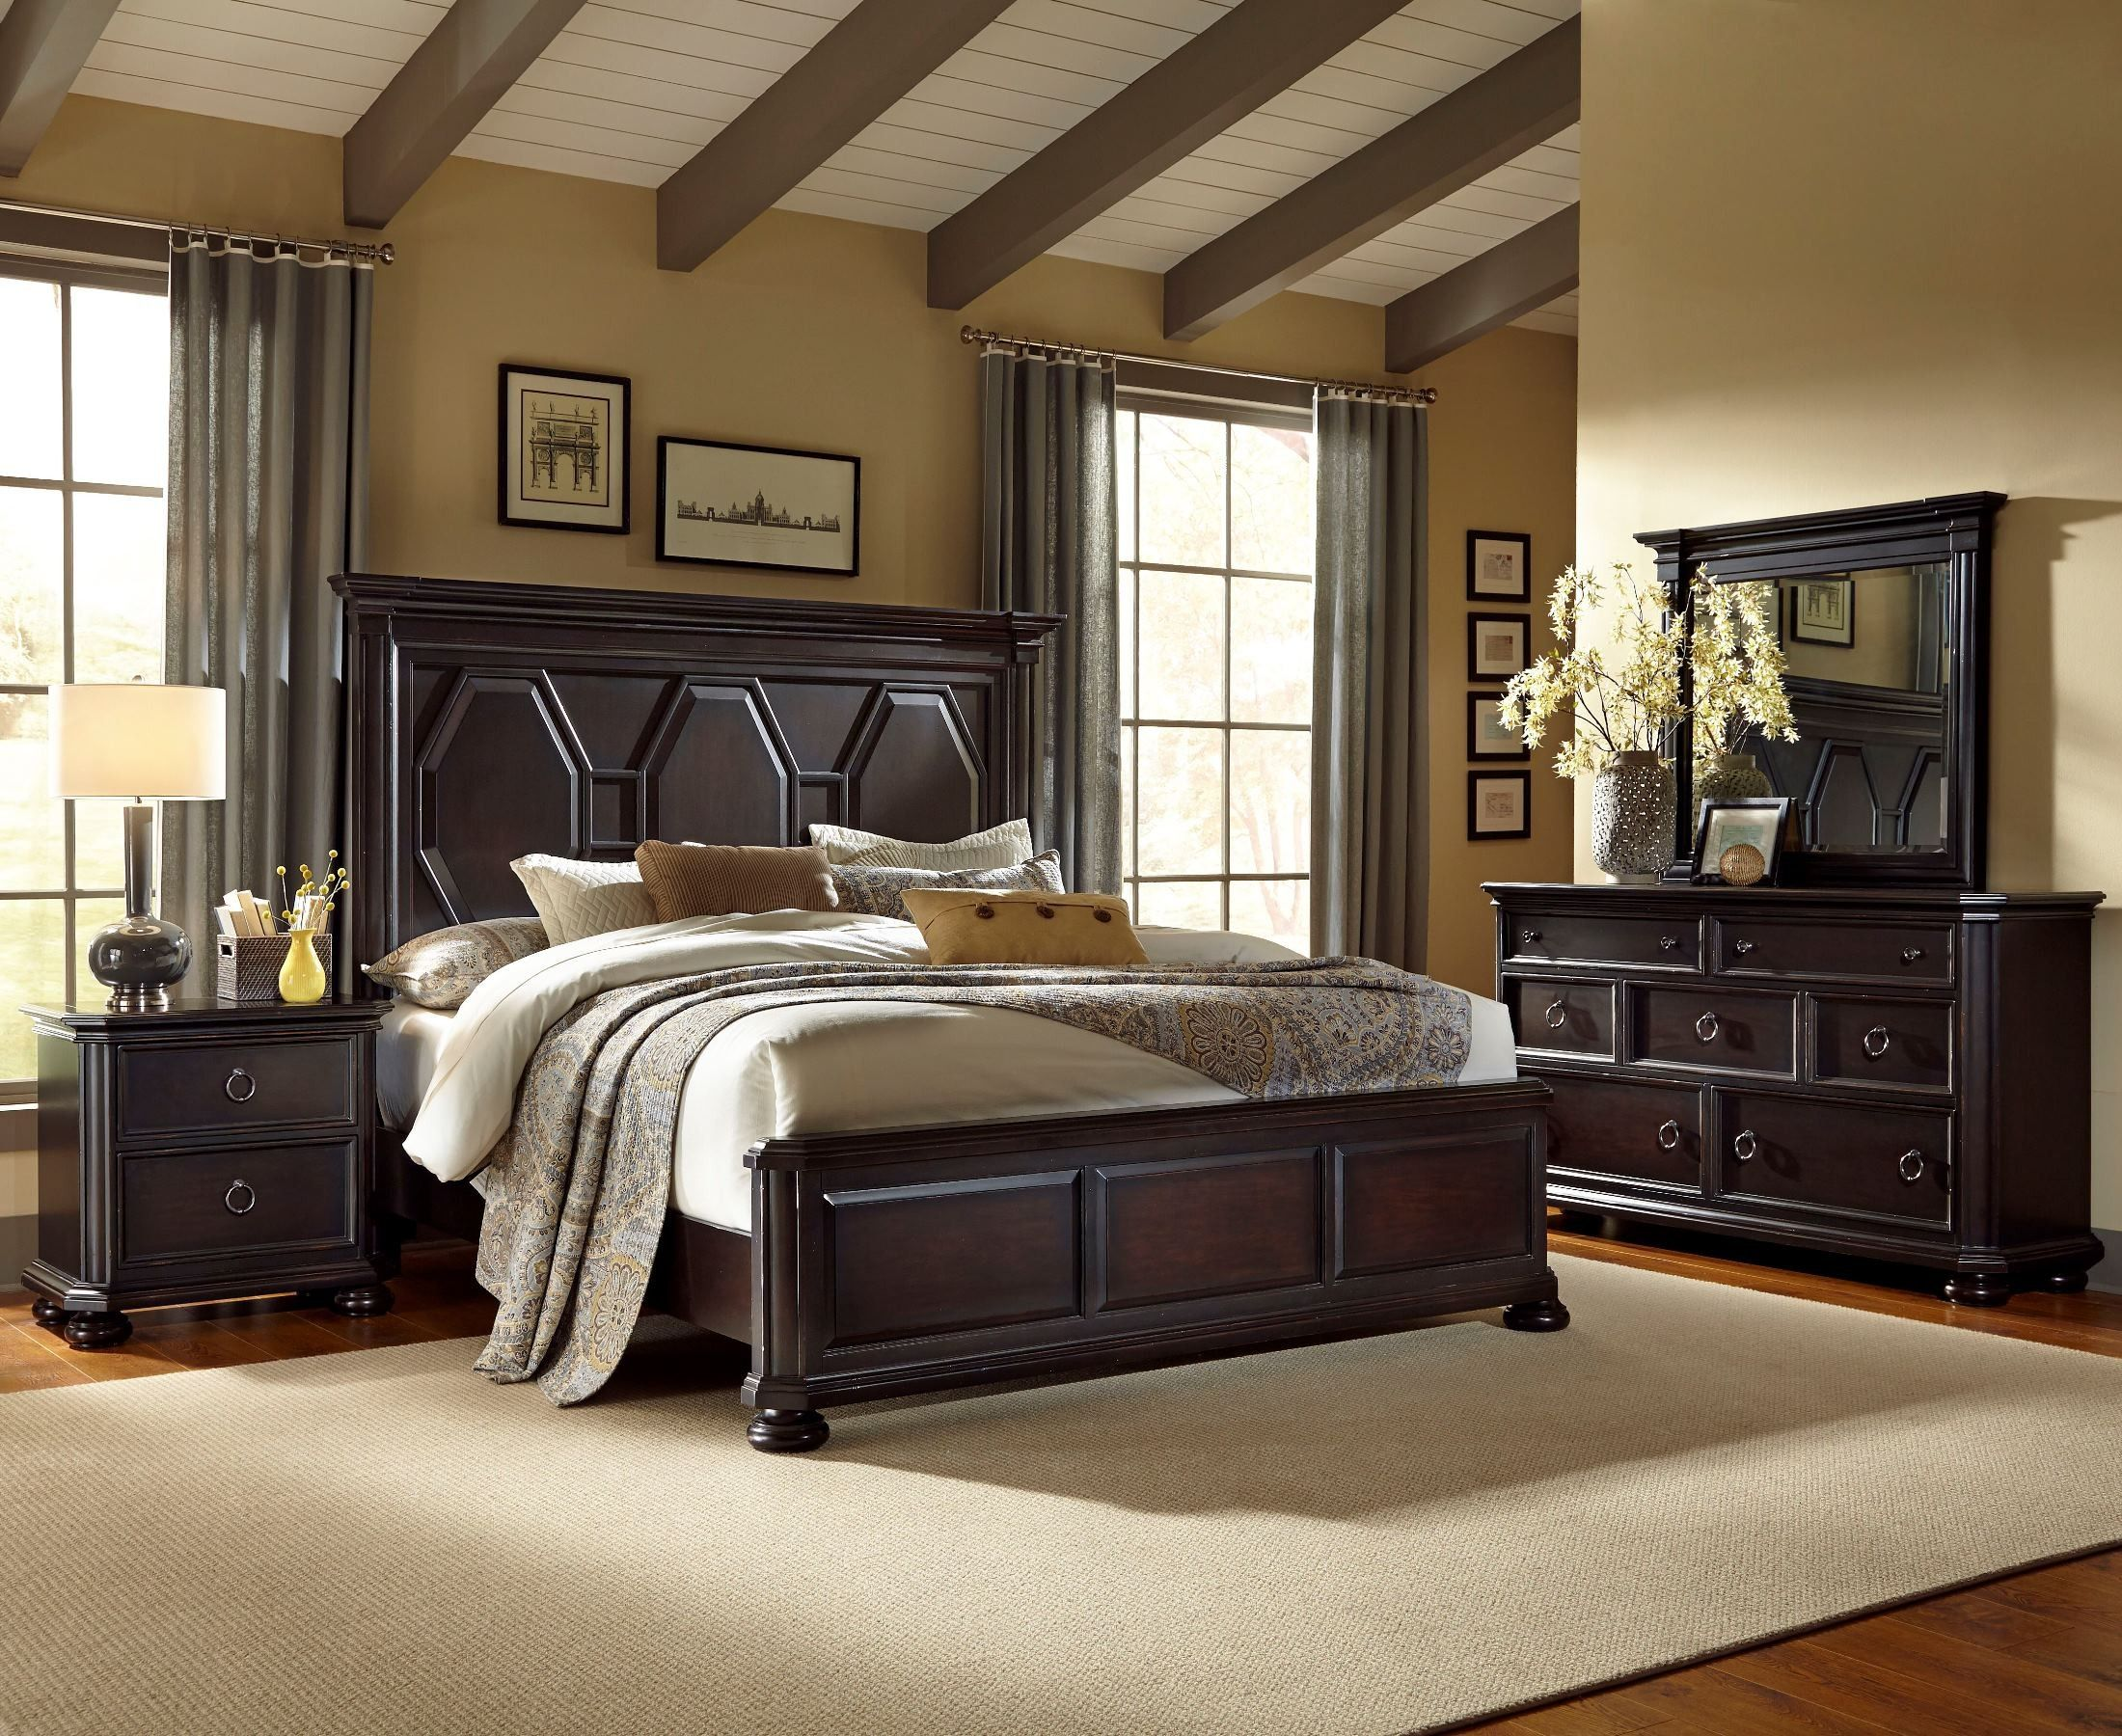 249 best Bedroom Collections images on Pinterest | 3/4 beds, Bedroom ideas  and Bedroom furniture